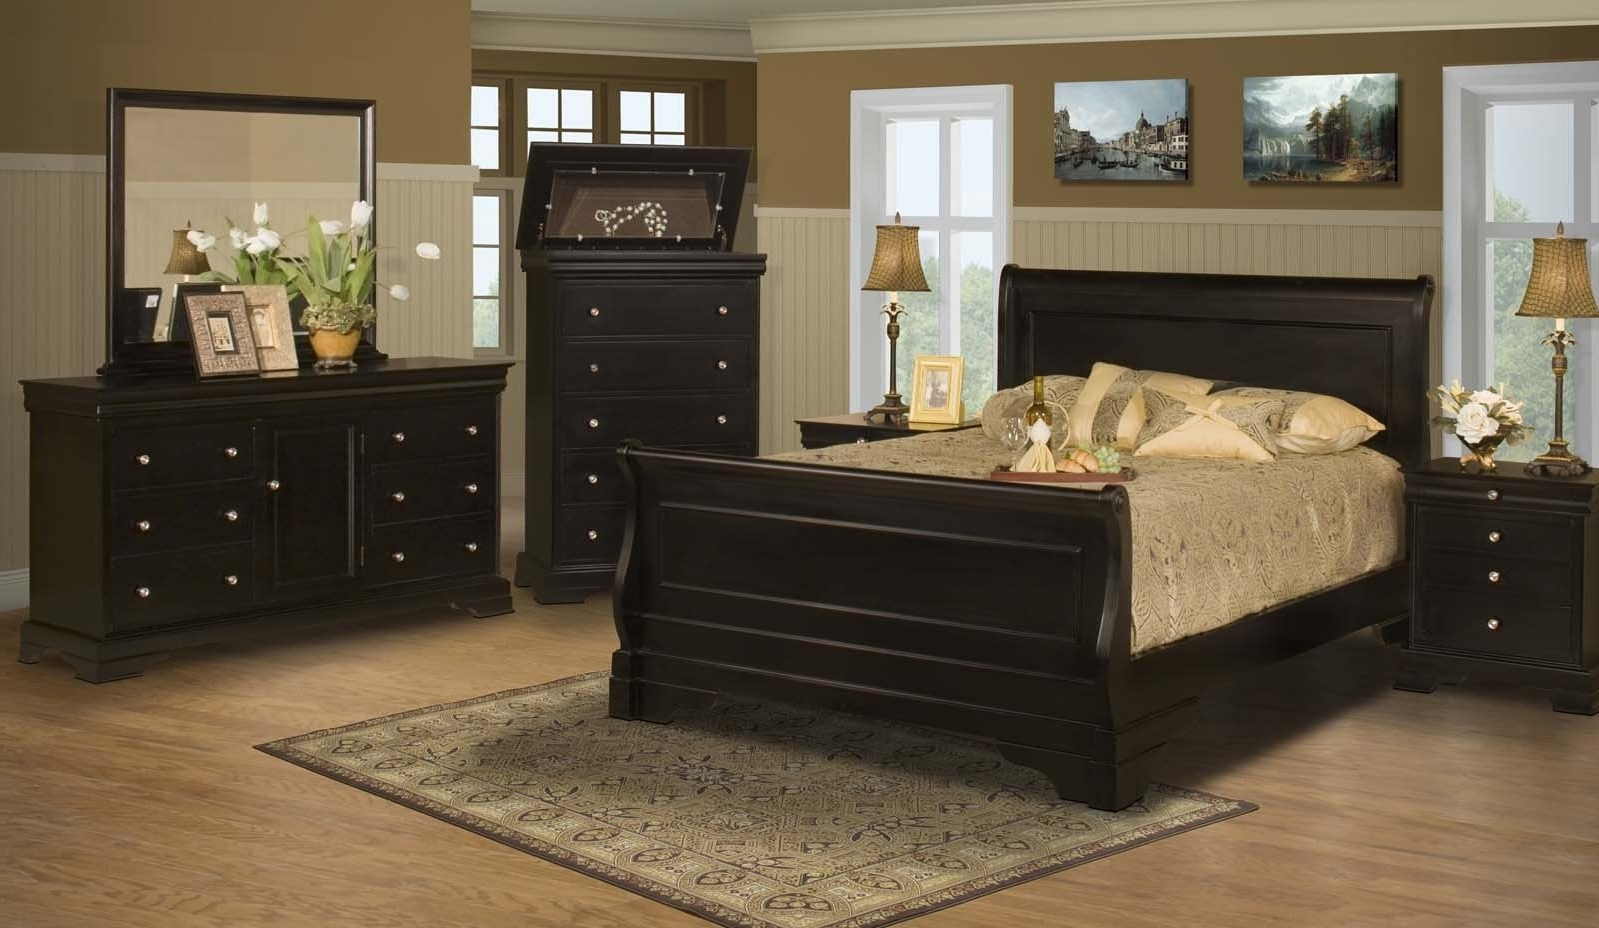 Stratford Sofas Within Popular Stratford Black Cherry Bedroom Furniture Collection For $ (View 14 of 15)